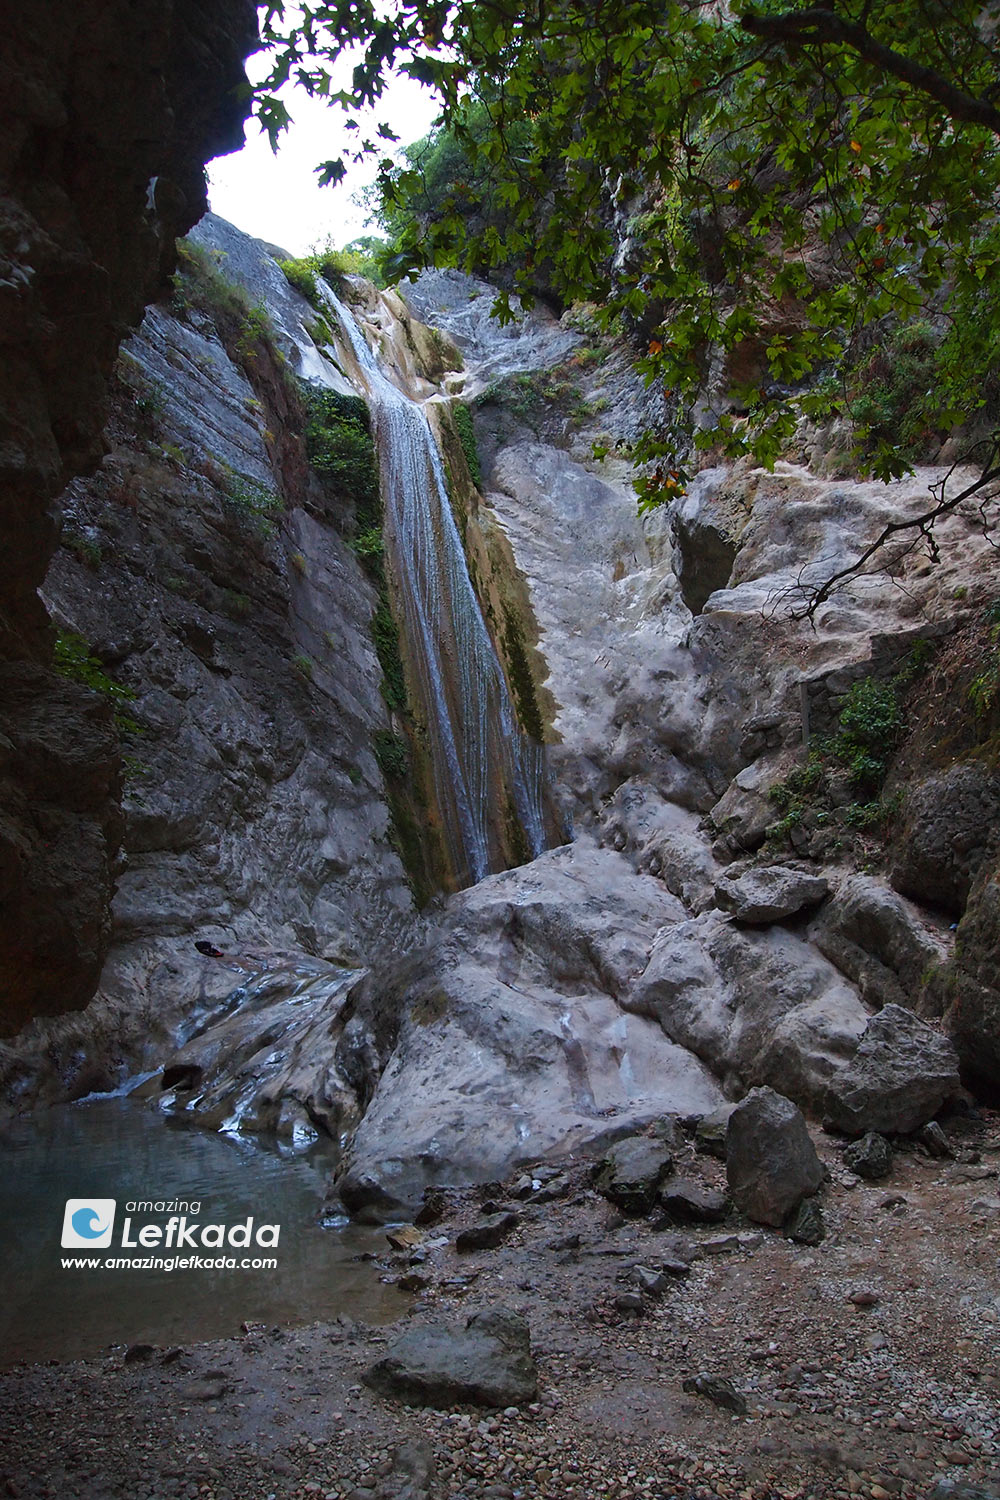 Waterfall in Lefkada, called Dimosari